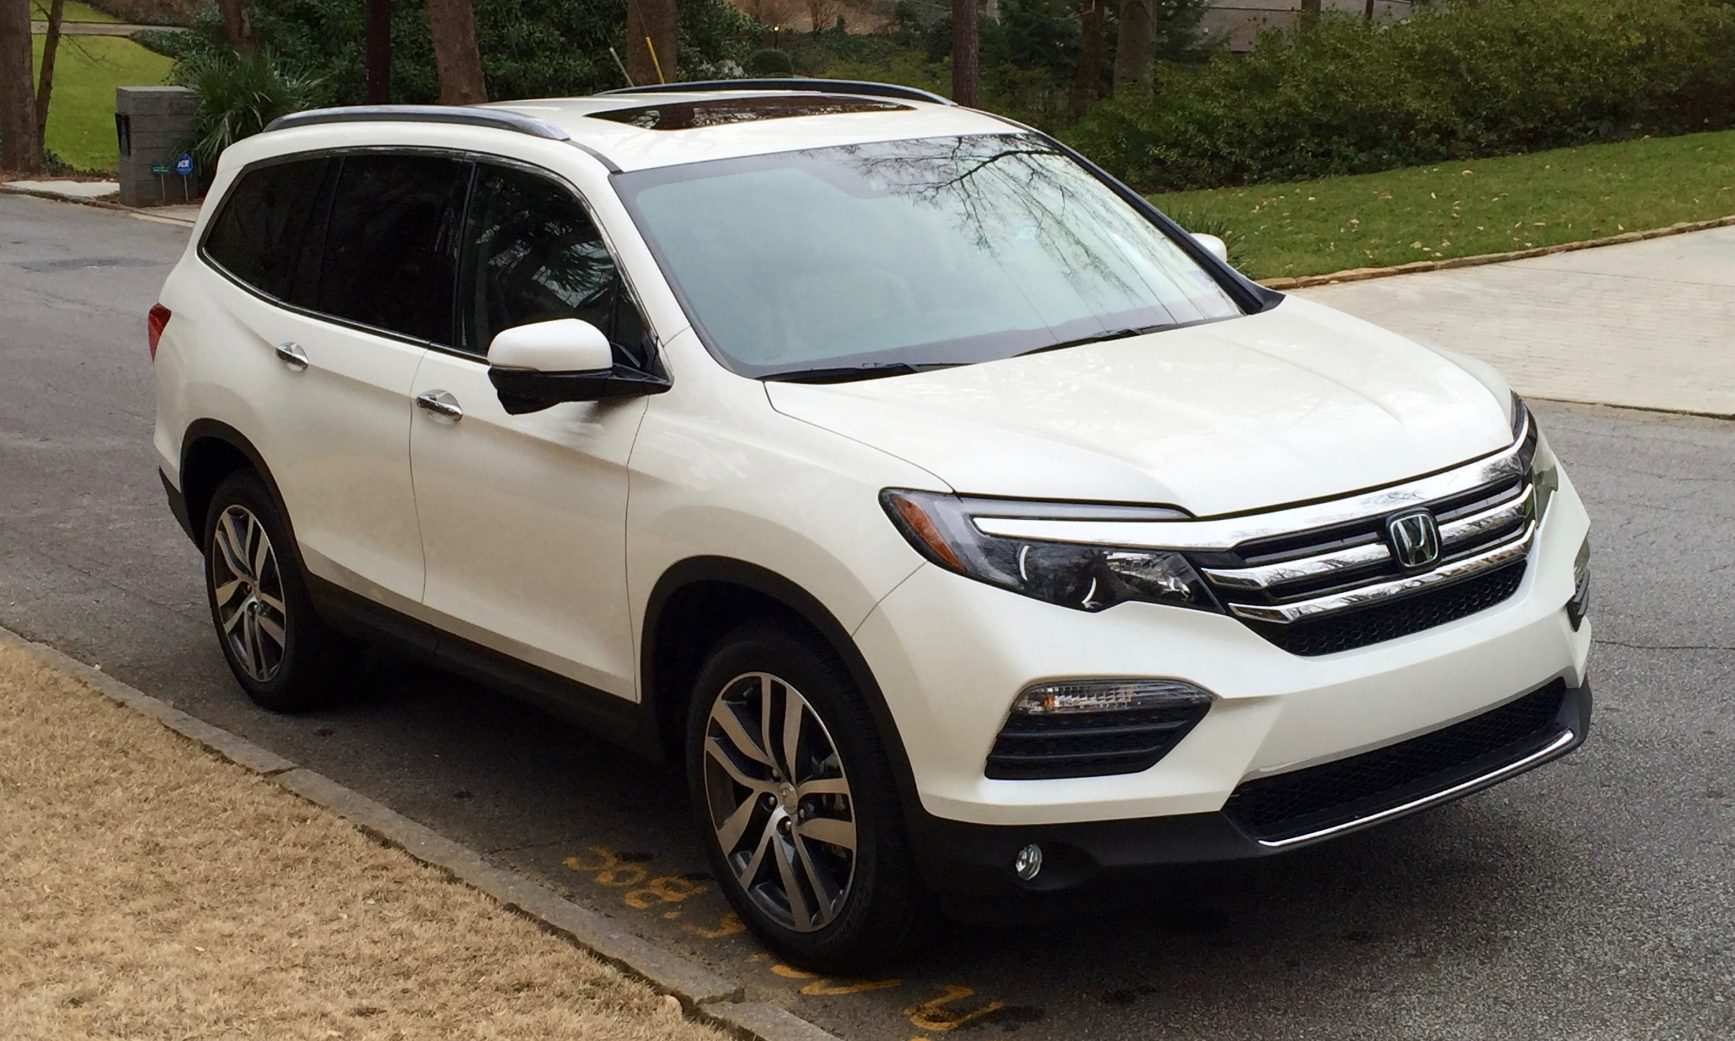 30 The Best Honda Pilot 2020 Release Date And Concept